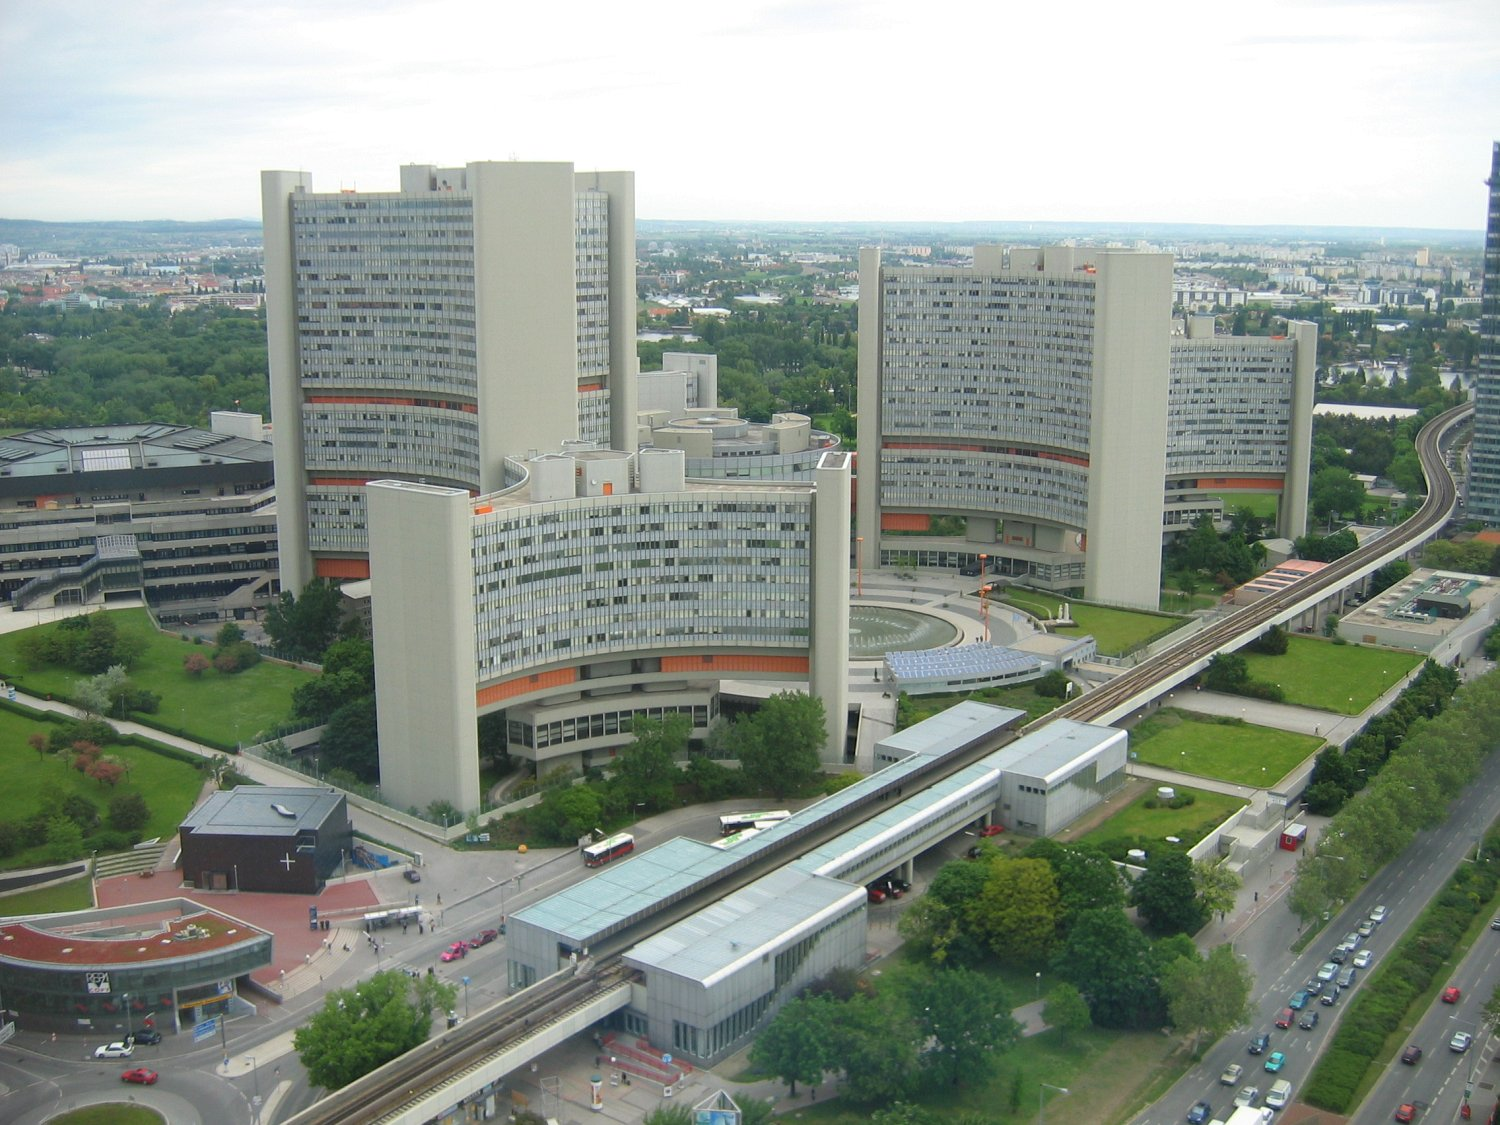 The Vienna International Centre and the Austria Center Vienna (the low hexagonal structure to left of tallest building) are the two parts of the UNO-City. The Donaucity Church (the cubical building in the lower left-hand corner) is part of the Donau City. In the foreground Vienna U-Bahn, Line U1 with station Kaisermühlen – Vienna International Centre. Photo taken on May 17, 2004.